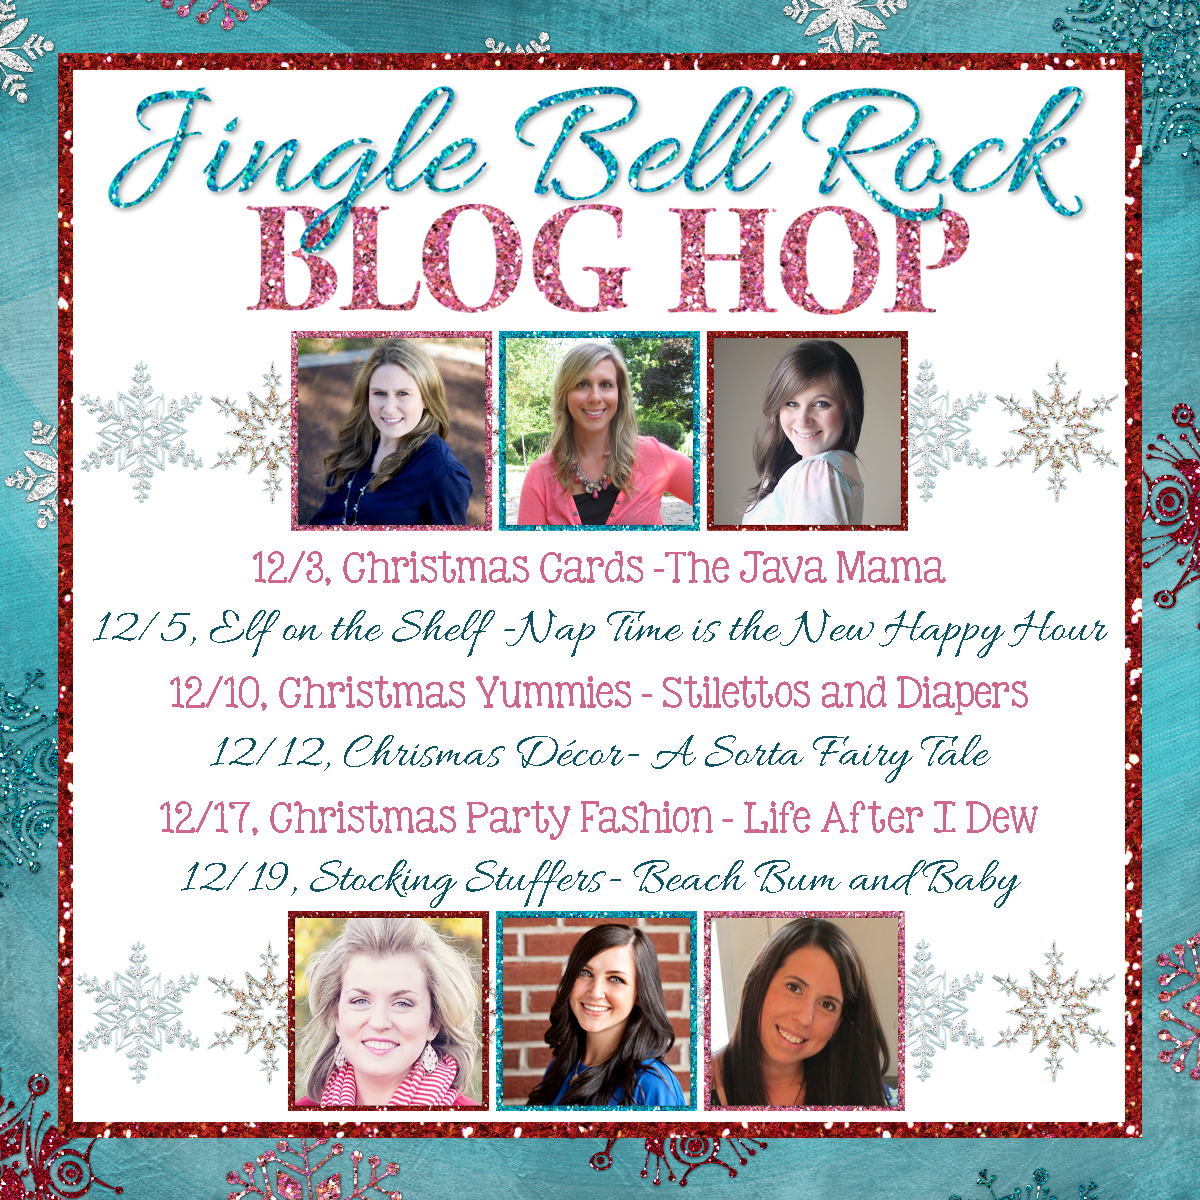 Today is day two of our Jingle Bell Rock Blog Hop  sadly I missed day one 53af6c9a7